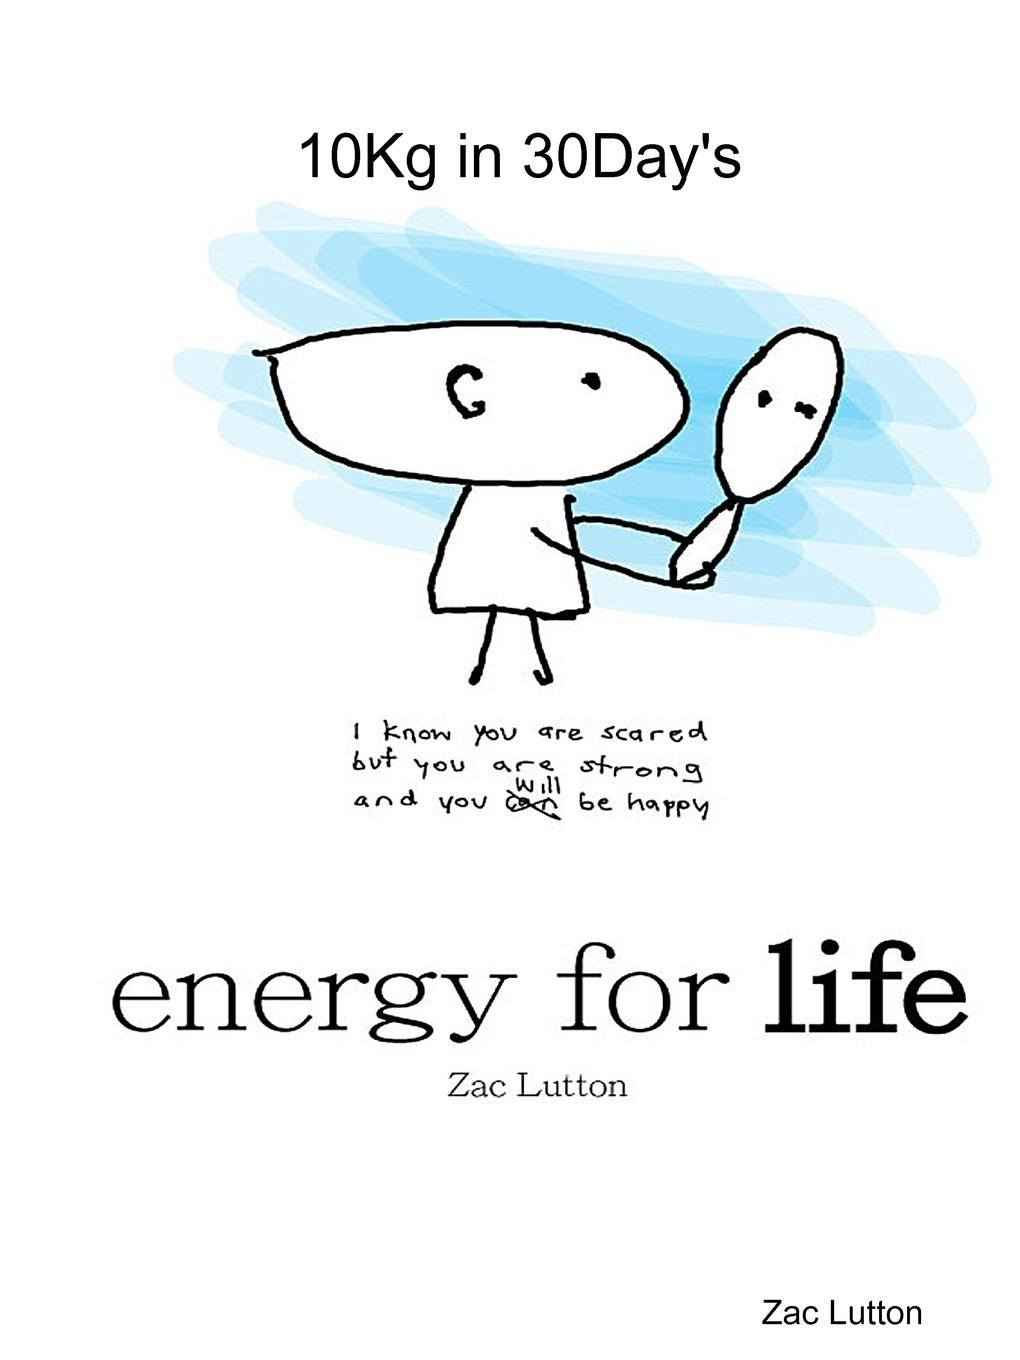 Zac Lutton energy fo life - 10Kg in 30day.s the road to a positive life